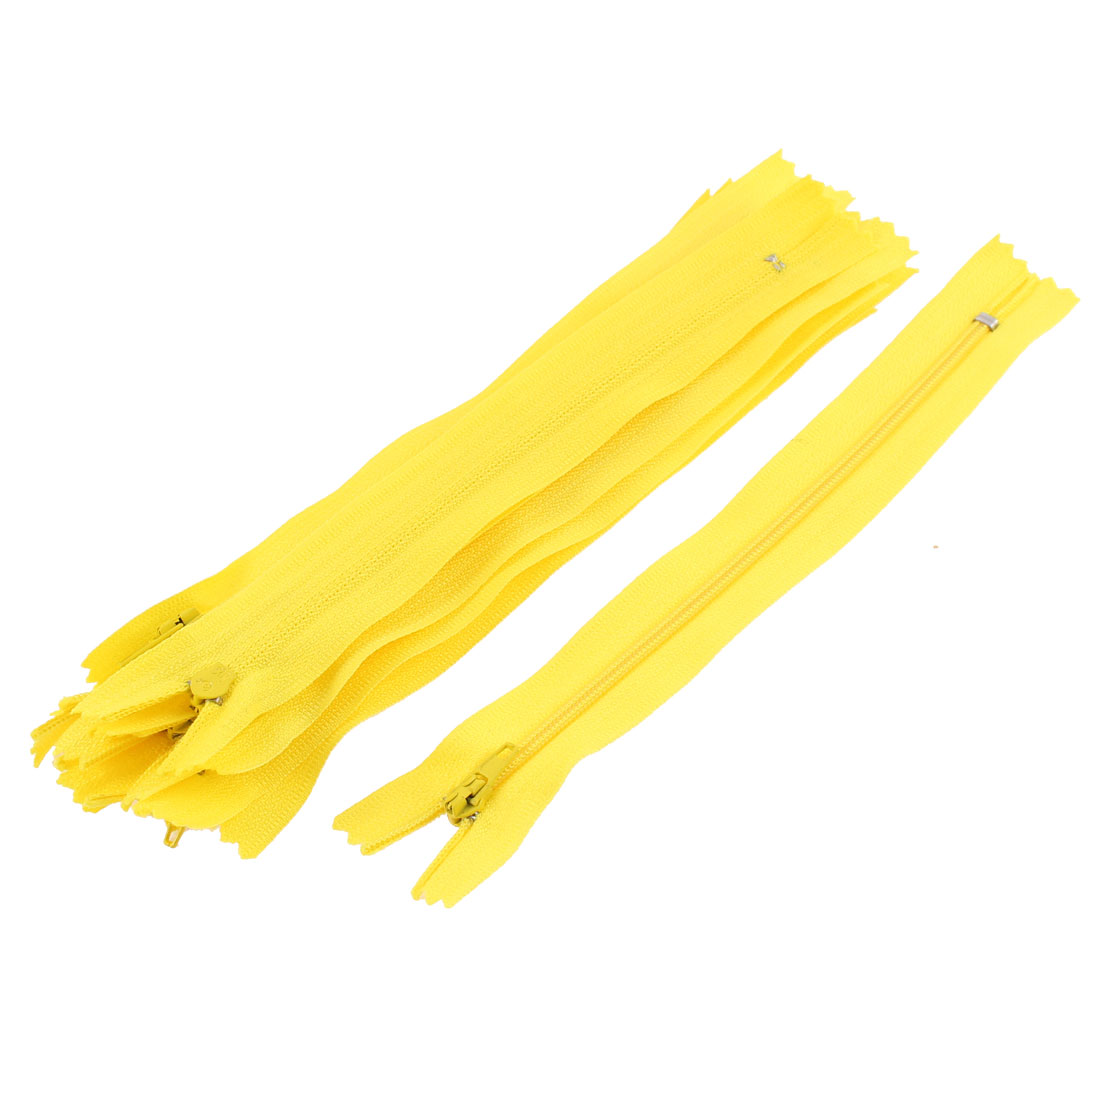 Dress Pants Closed End Nylon Zippers Tailor Sewing Craft Tool Yellow 18cm 10 Pcs